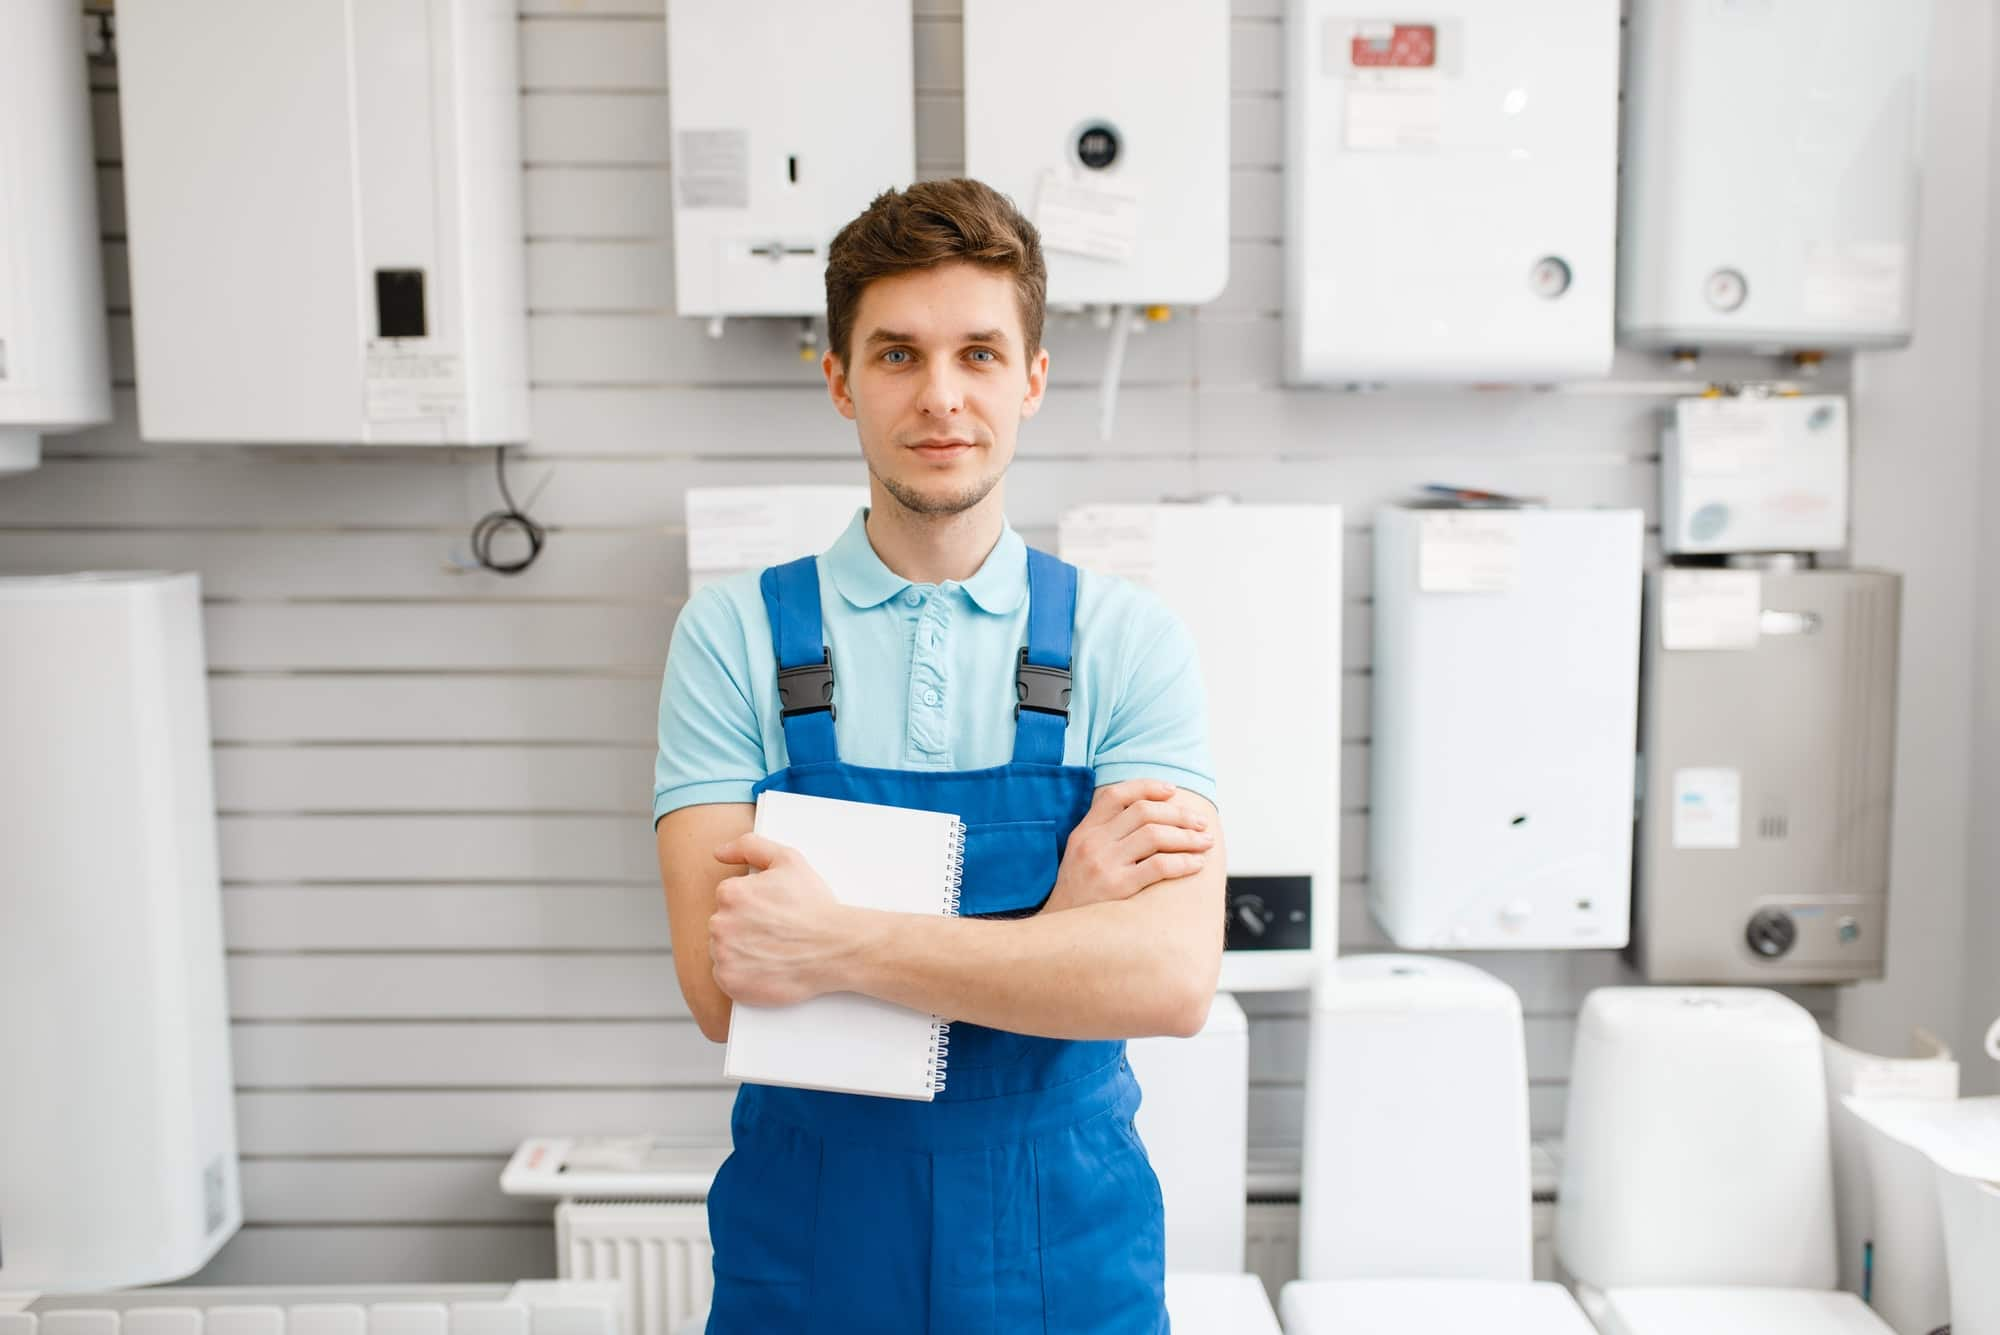 Plumber at showcase with boilers, plumbering store